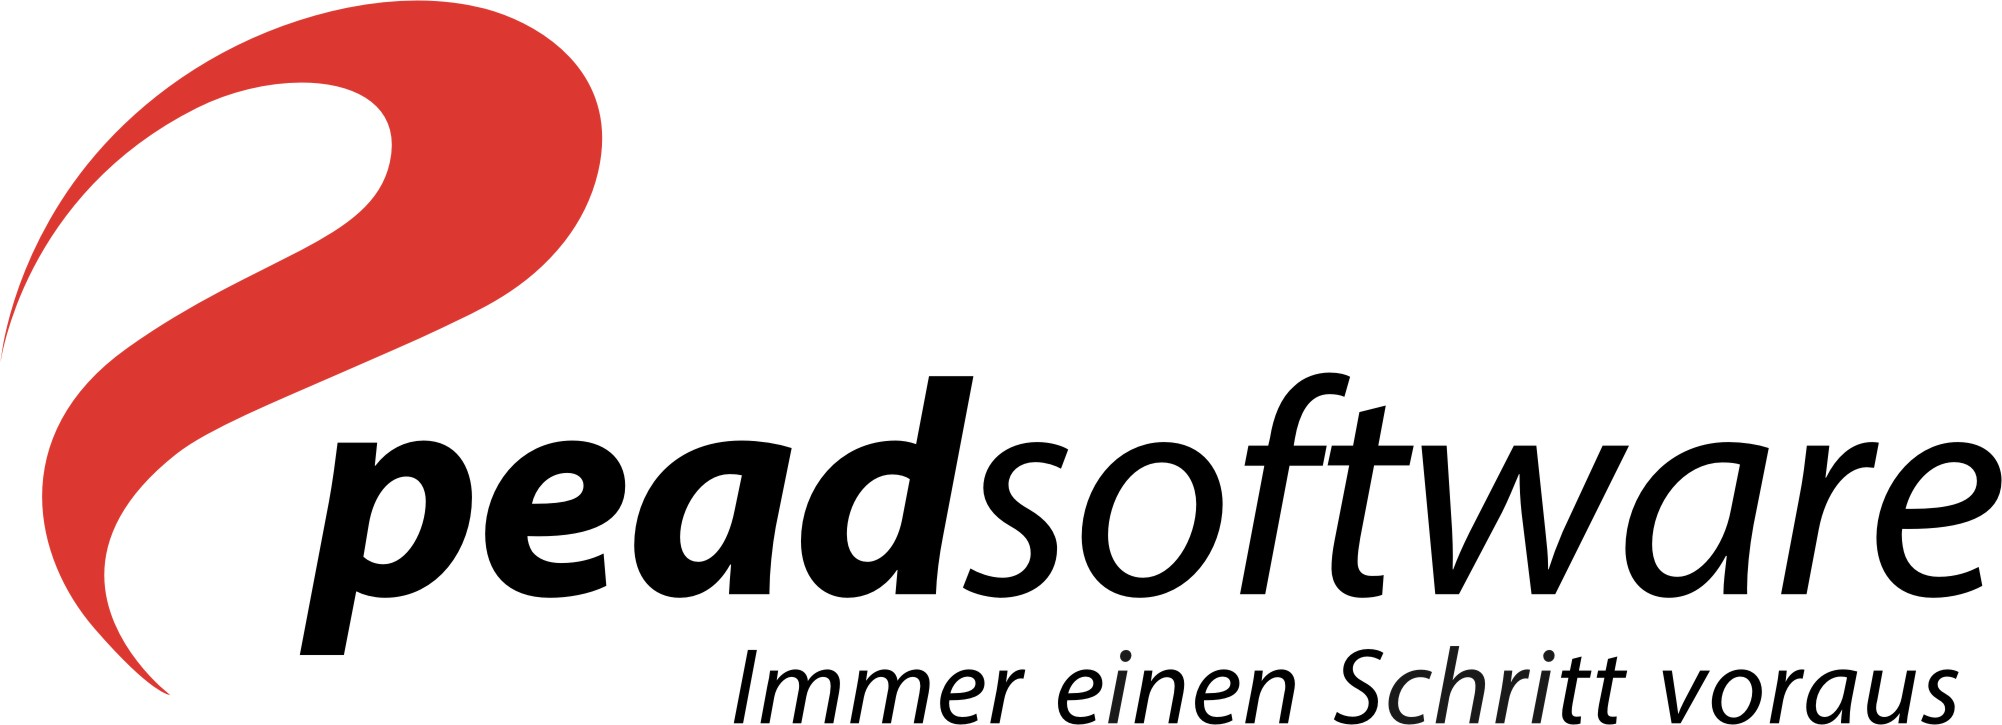 peadsoftware-master-color